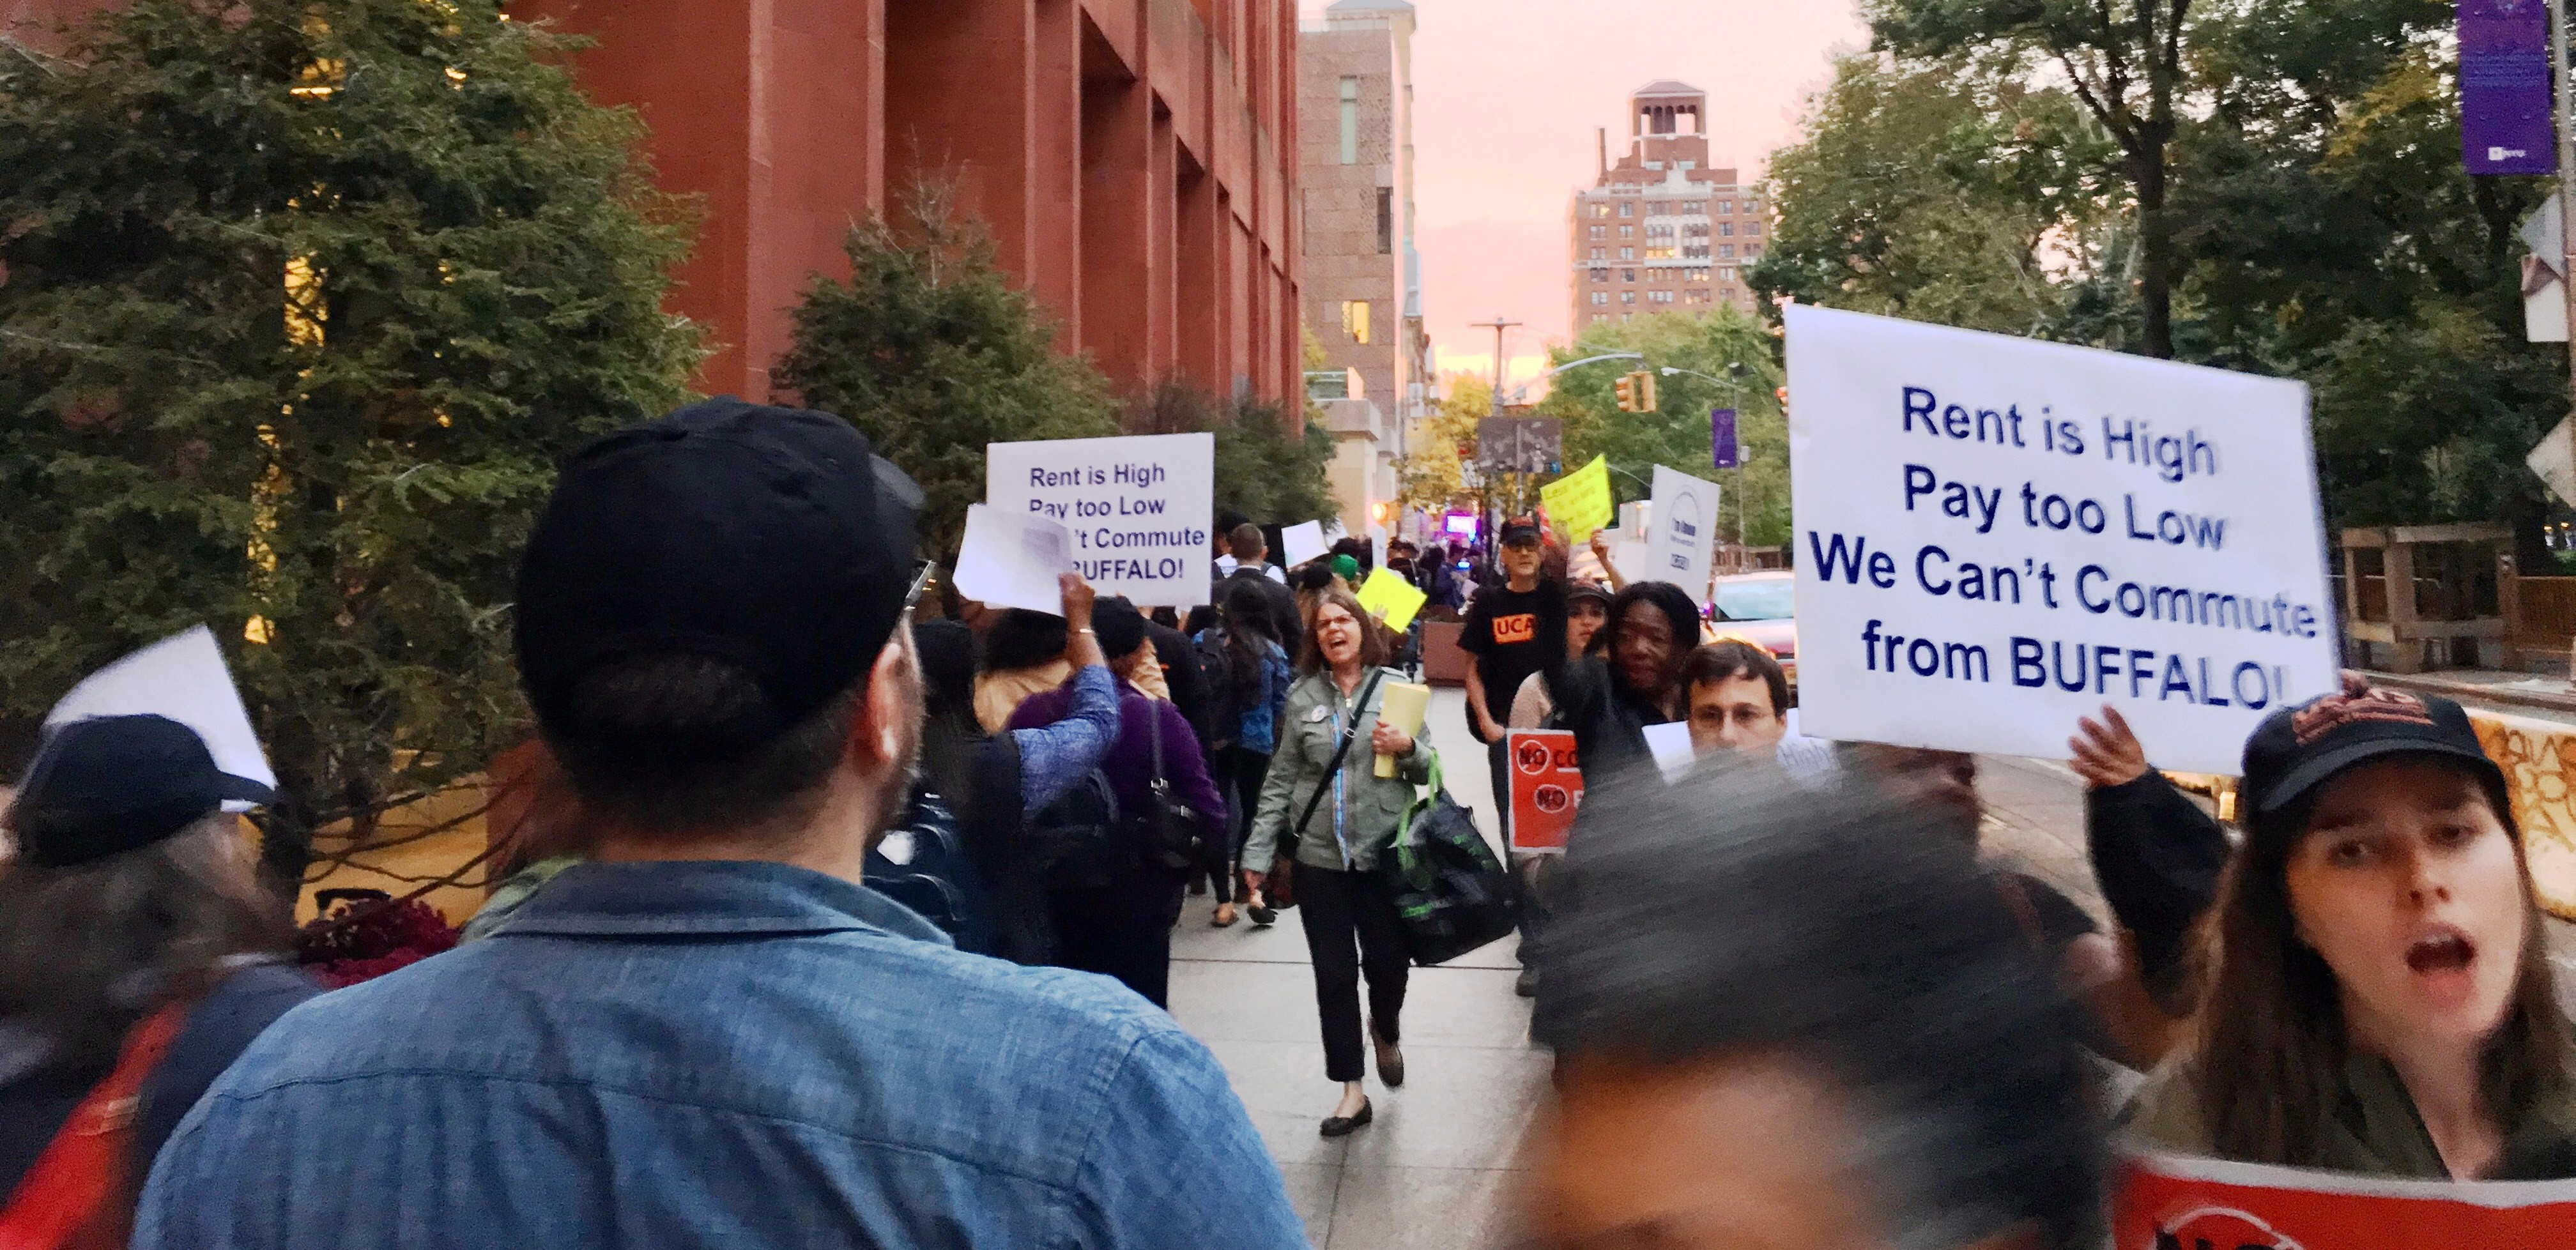 UCATS members and supporters rallied for a fair contract in front of Bobst Library on October 25.